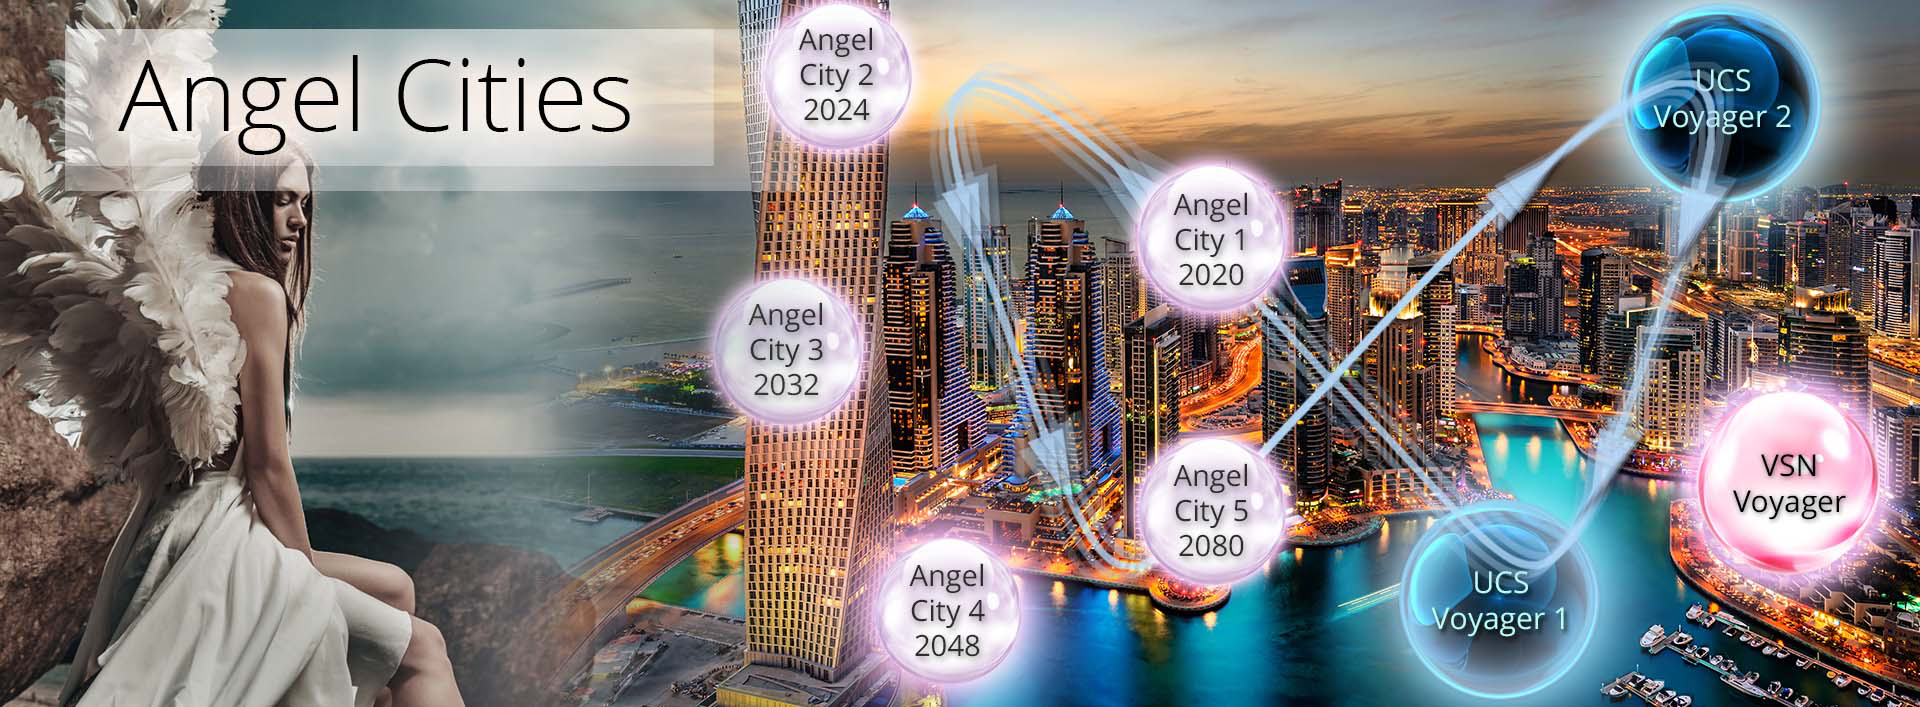 Angel Cities